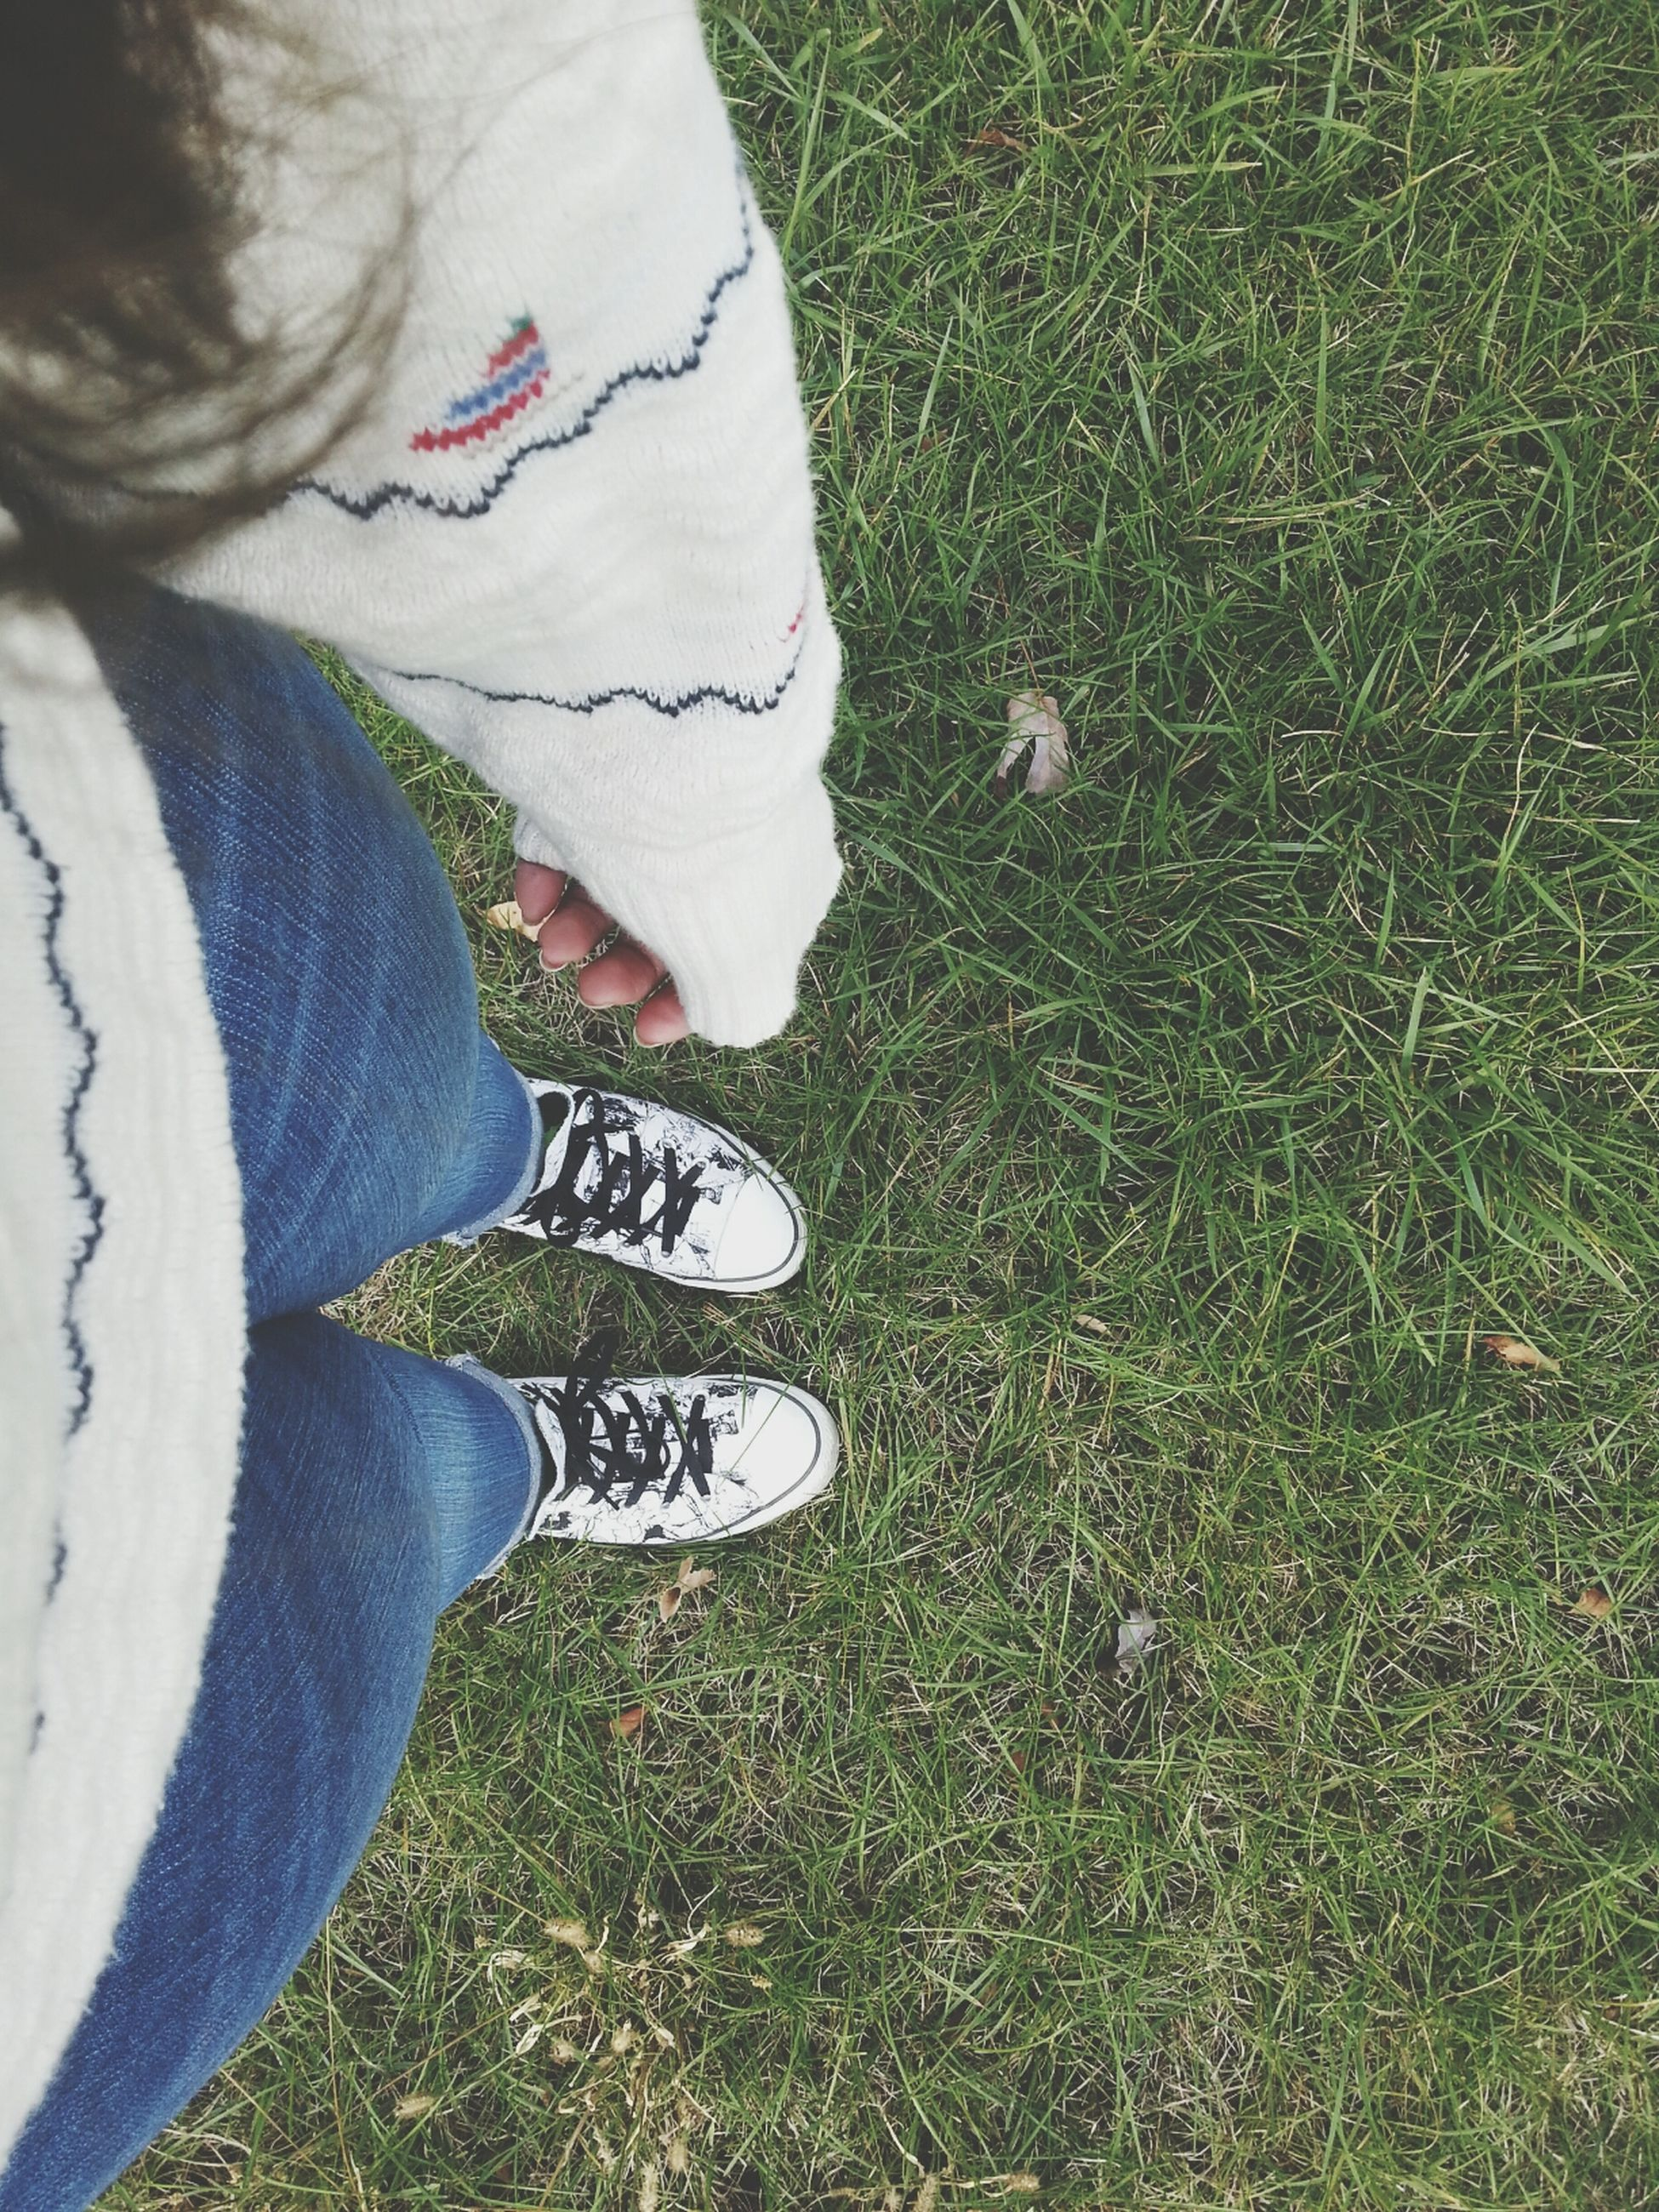 low section, shoe, high angle view, person, grass, lifestyles, leisure activity, standing, personal perspective, field, footwear, grassy, jeans, unrecognizable person, men, canvas shoe